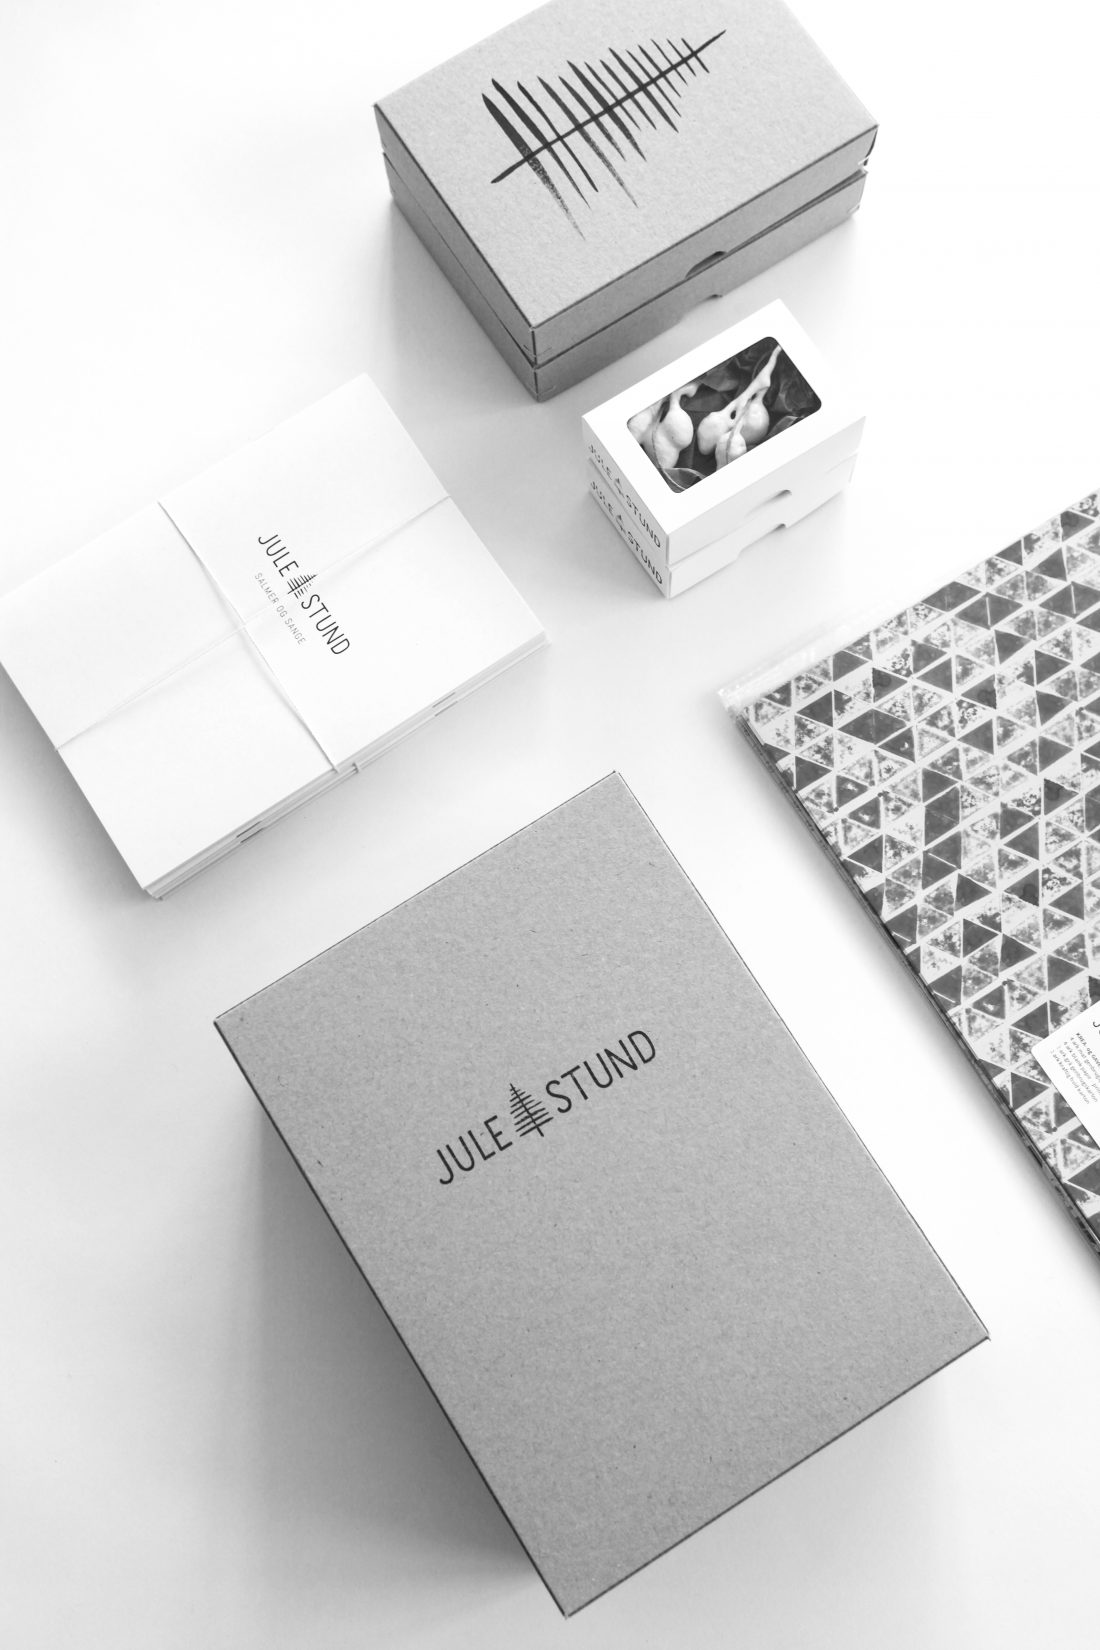 Julestund packaging